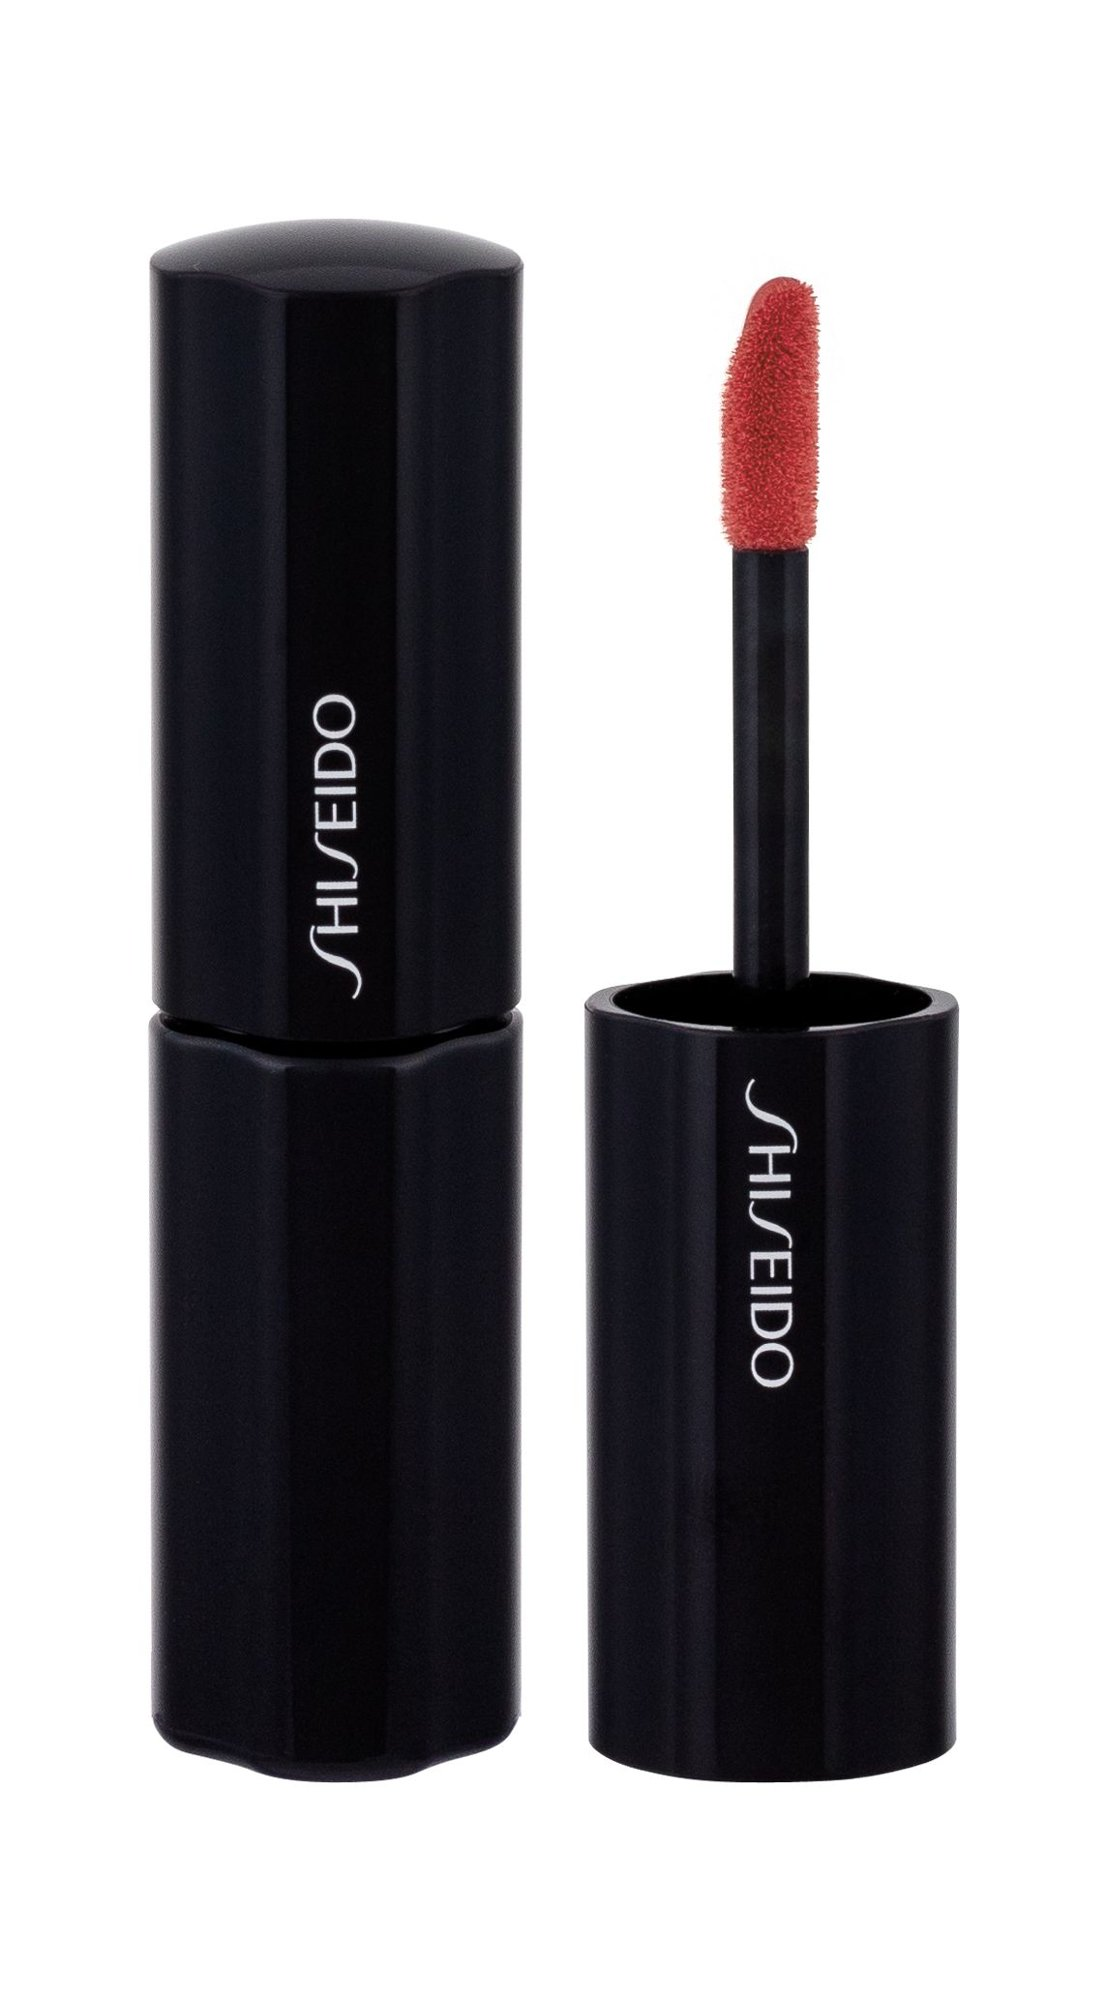 Shiseido Lacquer Rouge Cosmetic 6ml OR 508